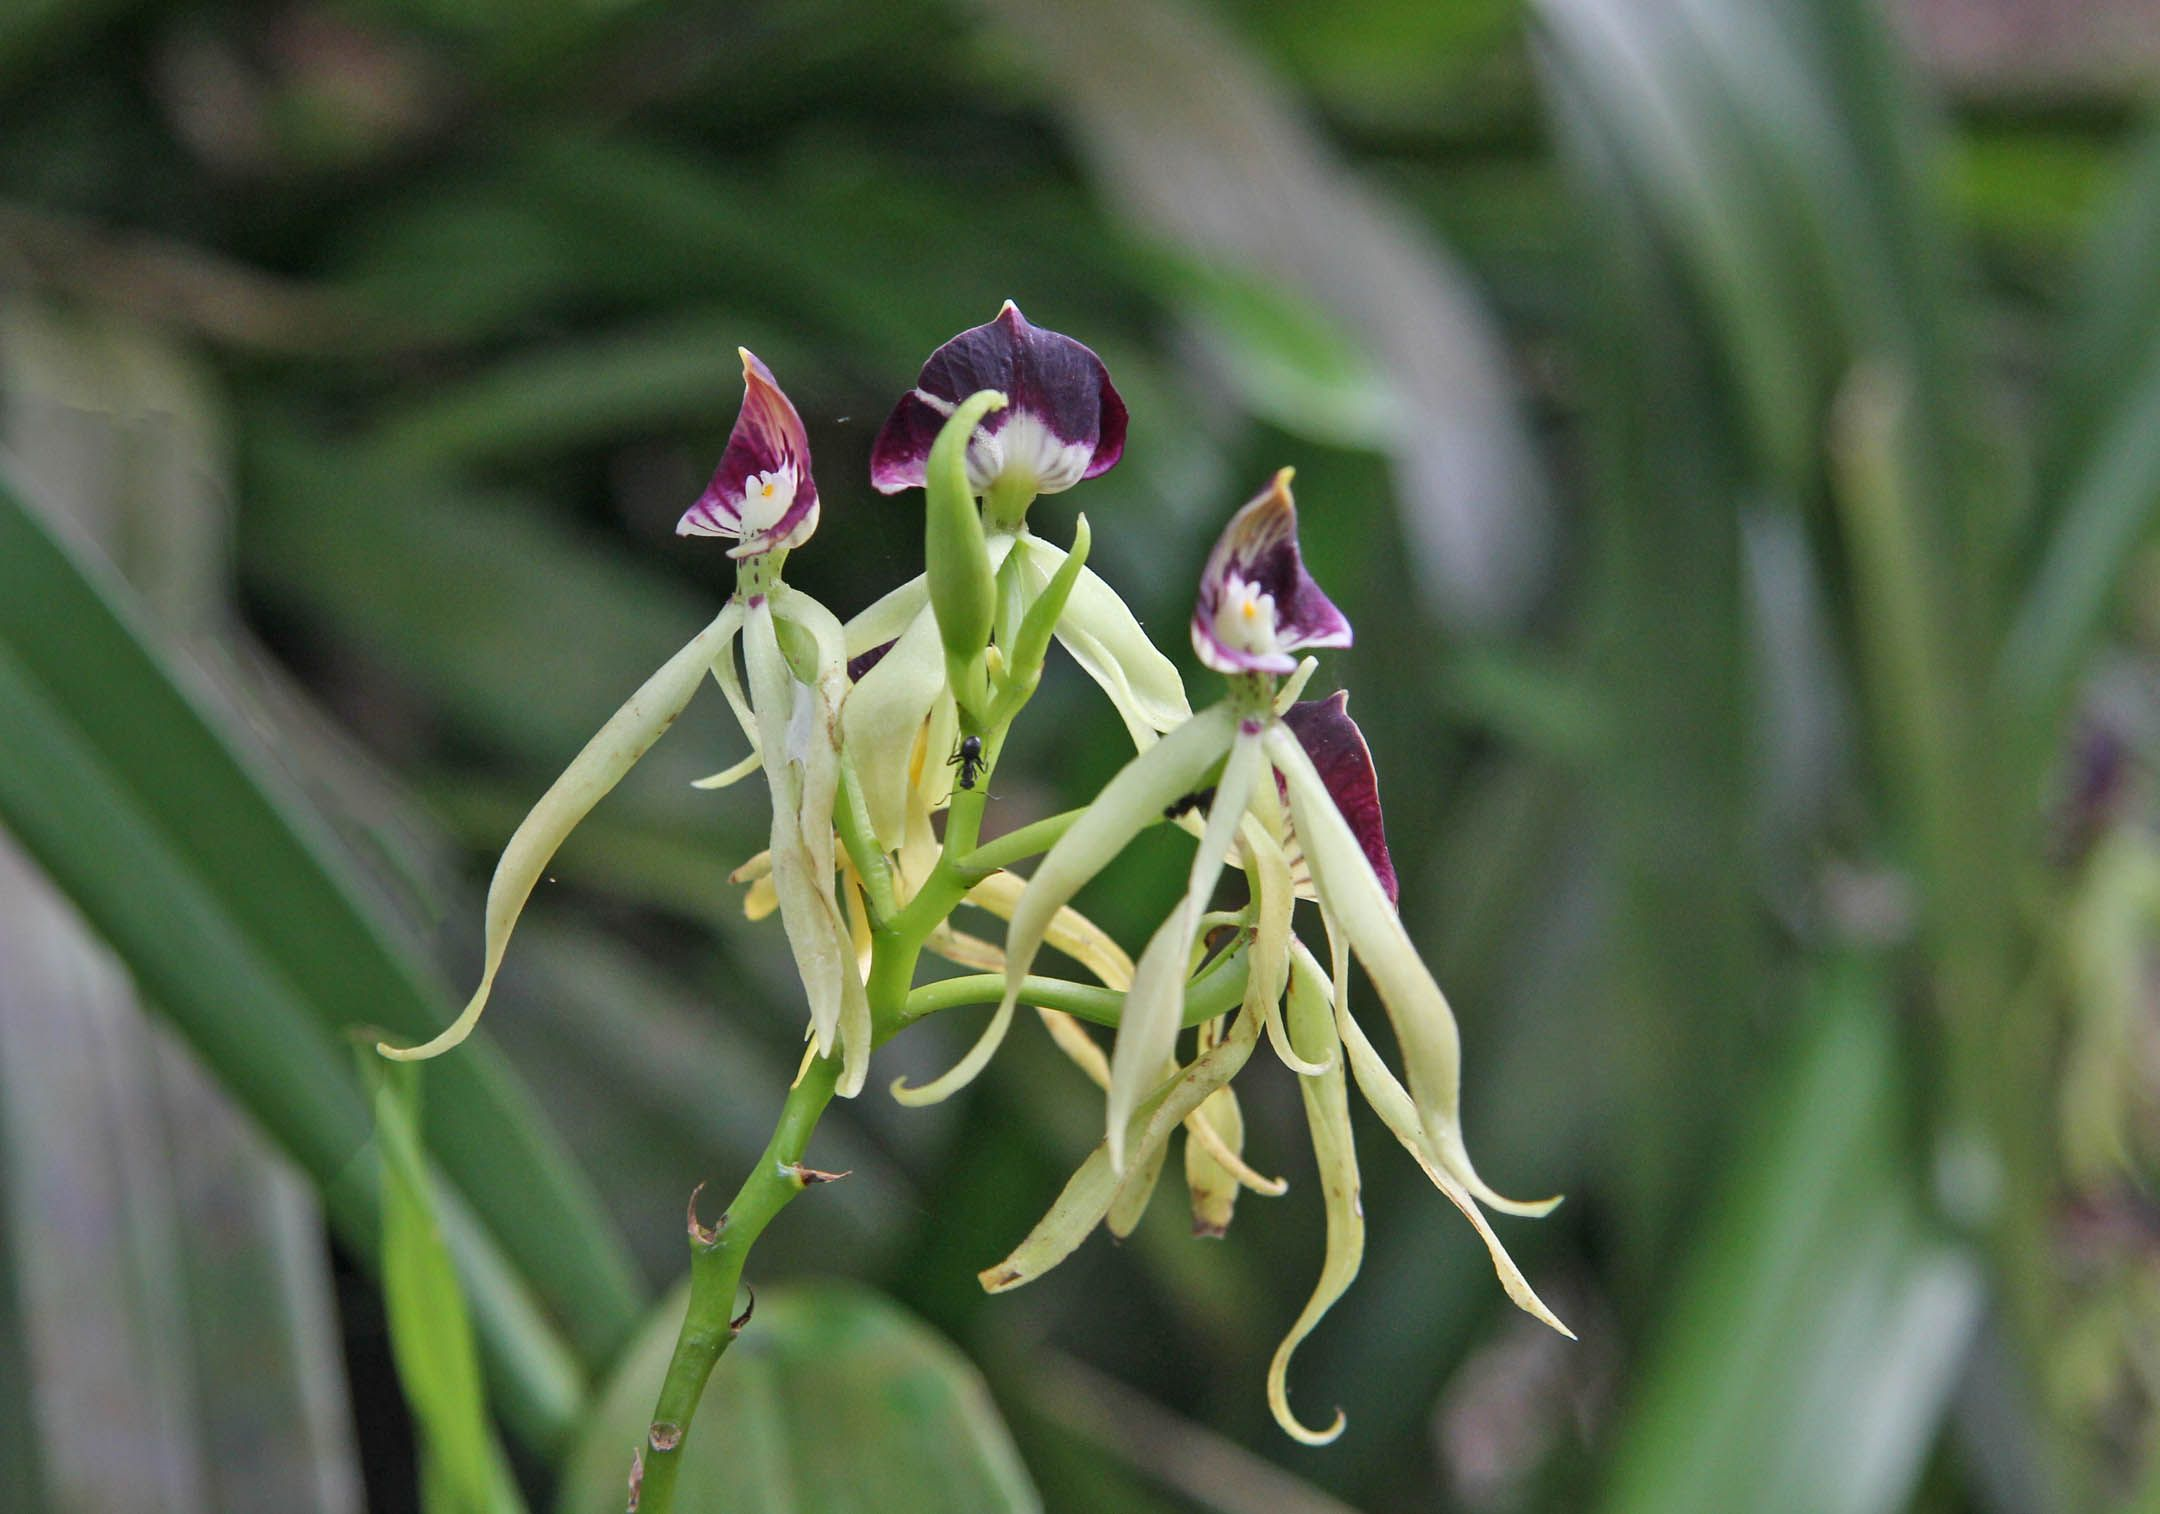 FACTOID the Black orchid, Belize's national flower, Is